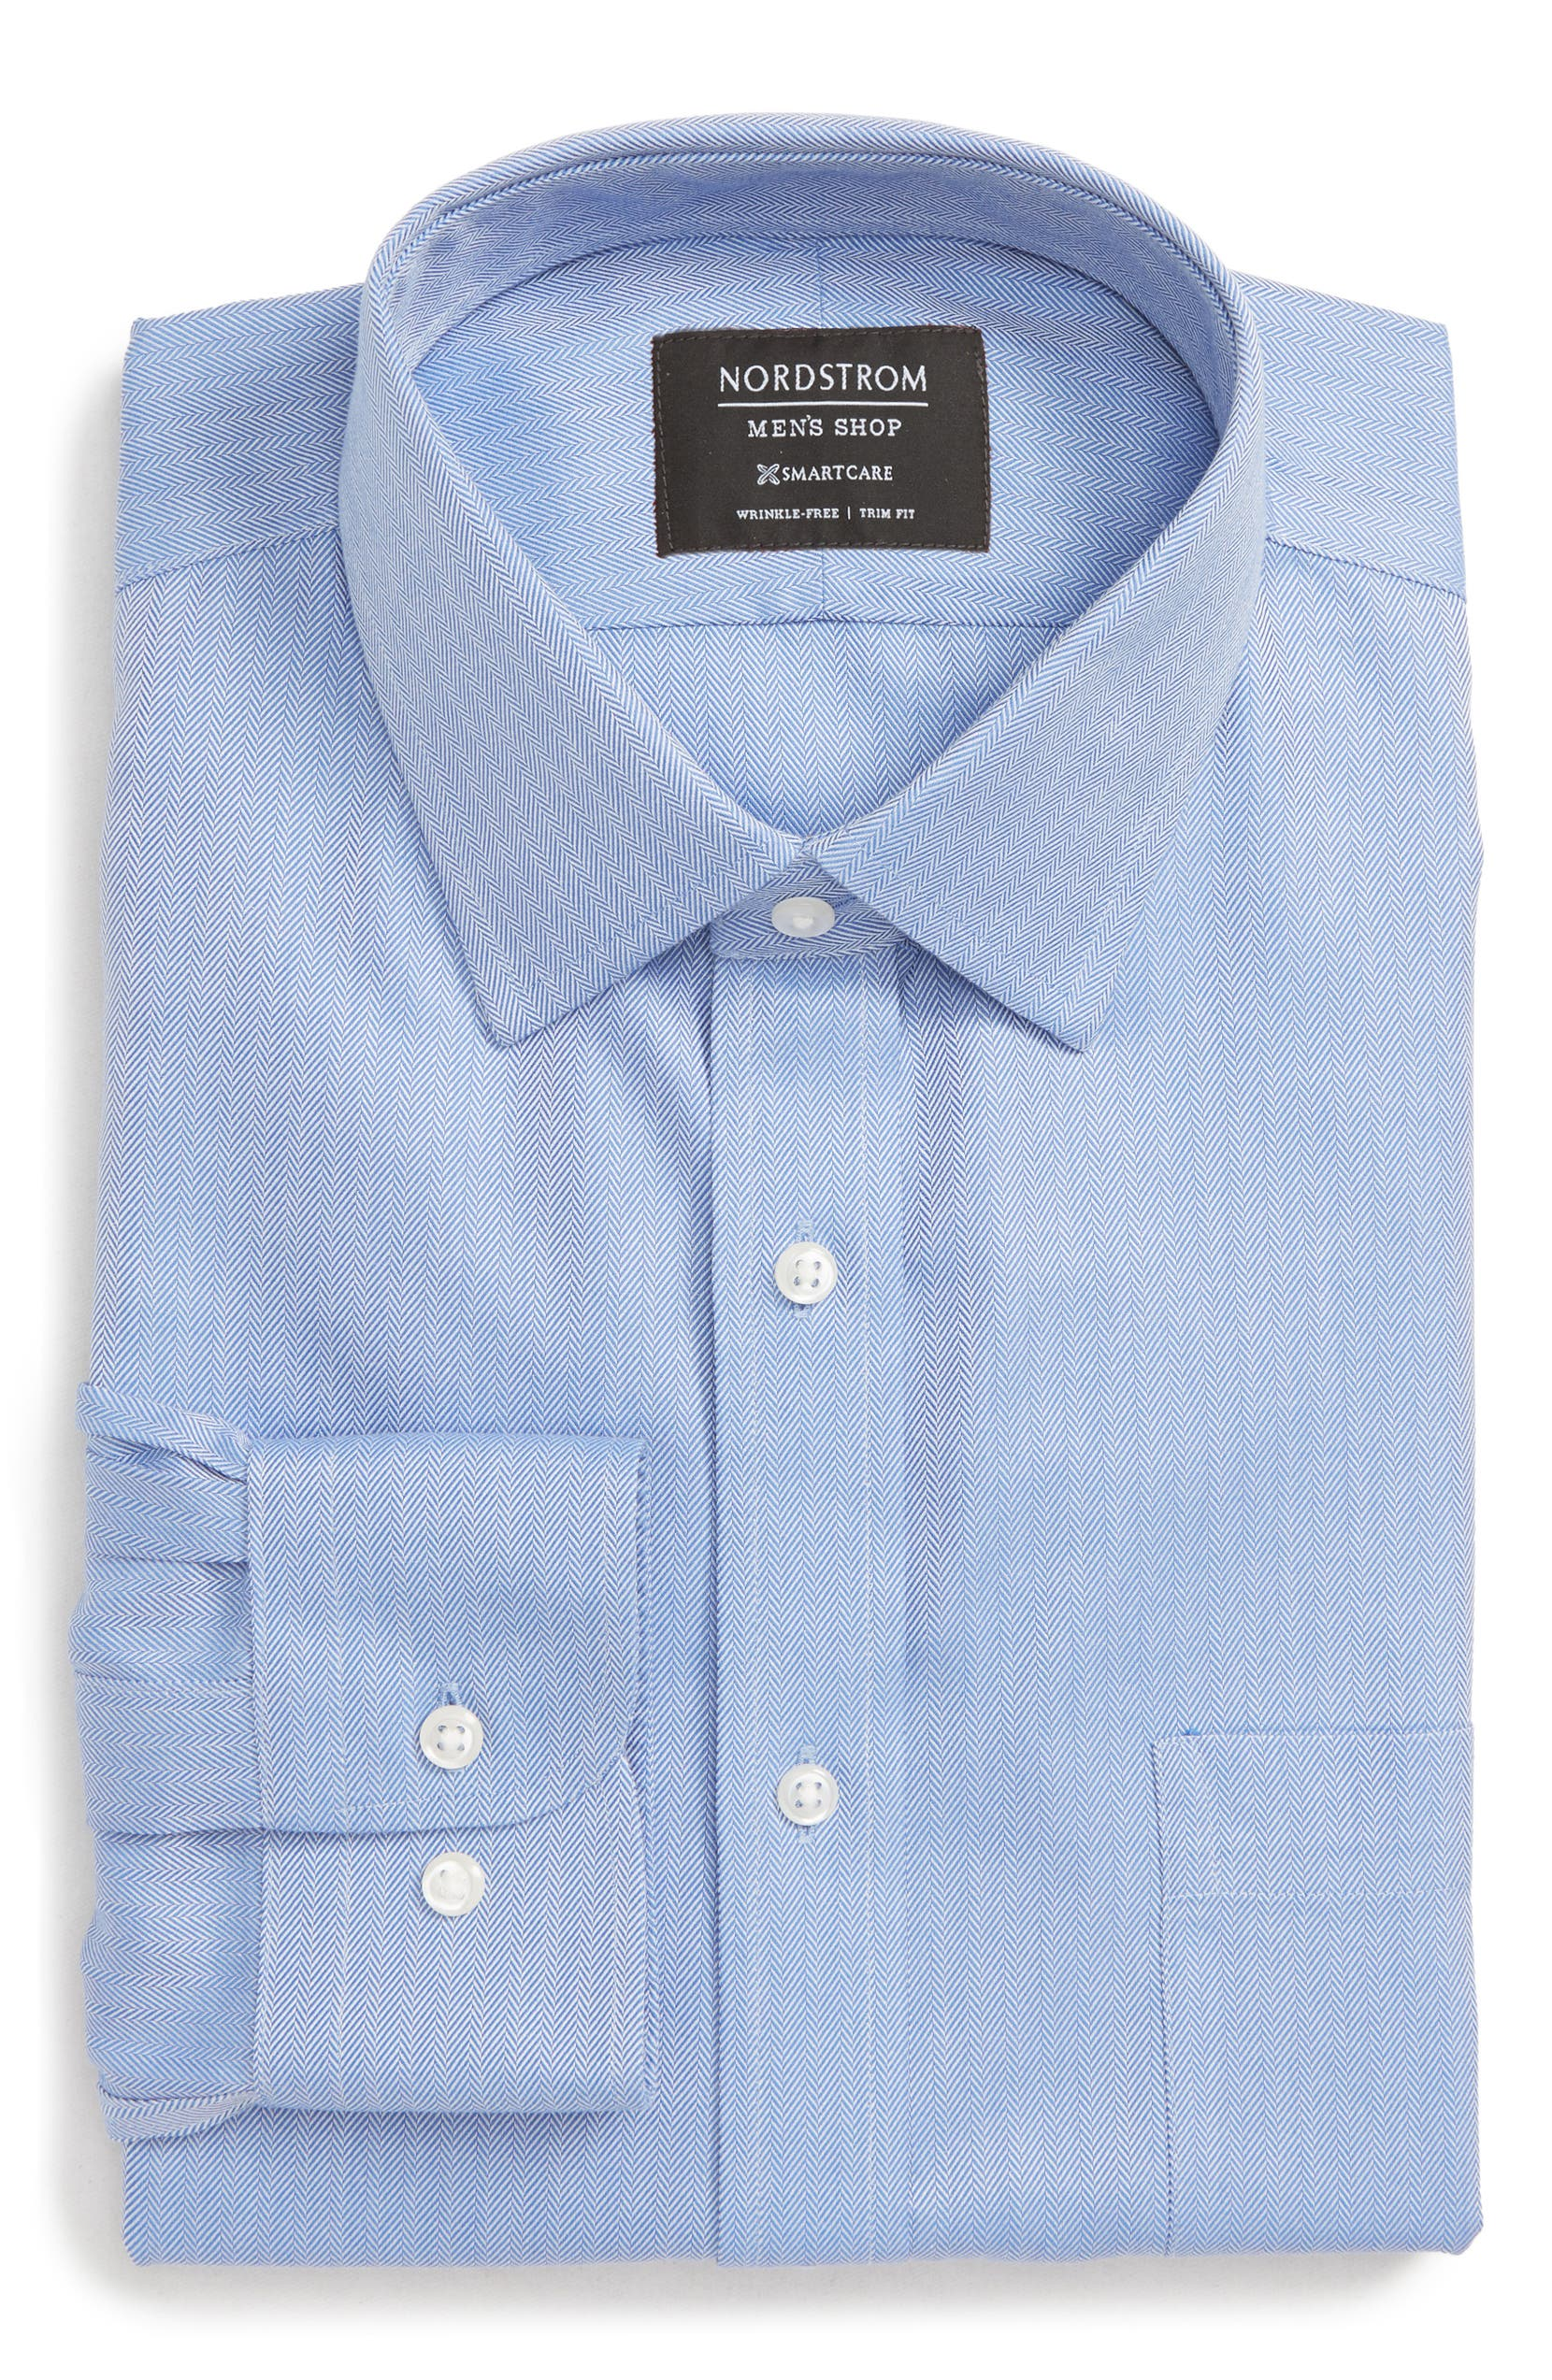 Nordstrom Mens Shop Smartcare Trim Fit Herringbone Dress Shirt